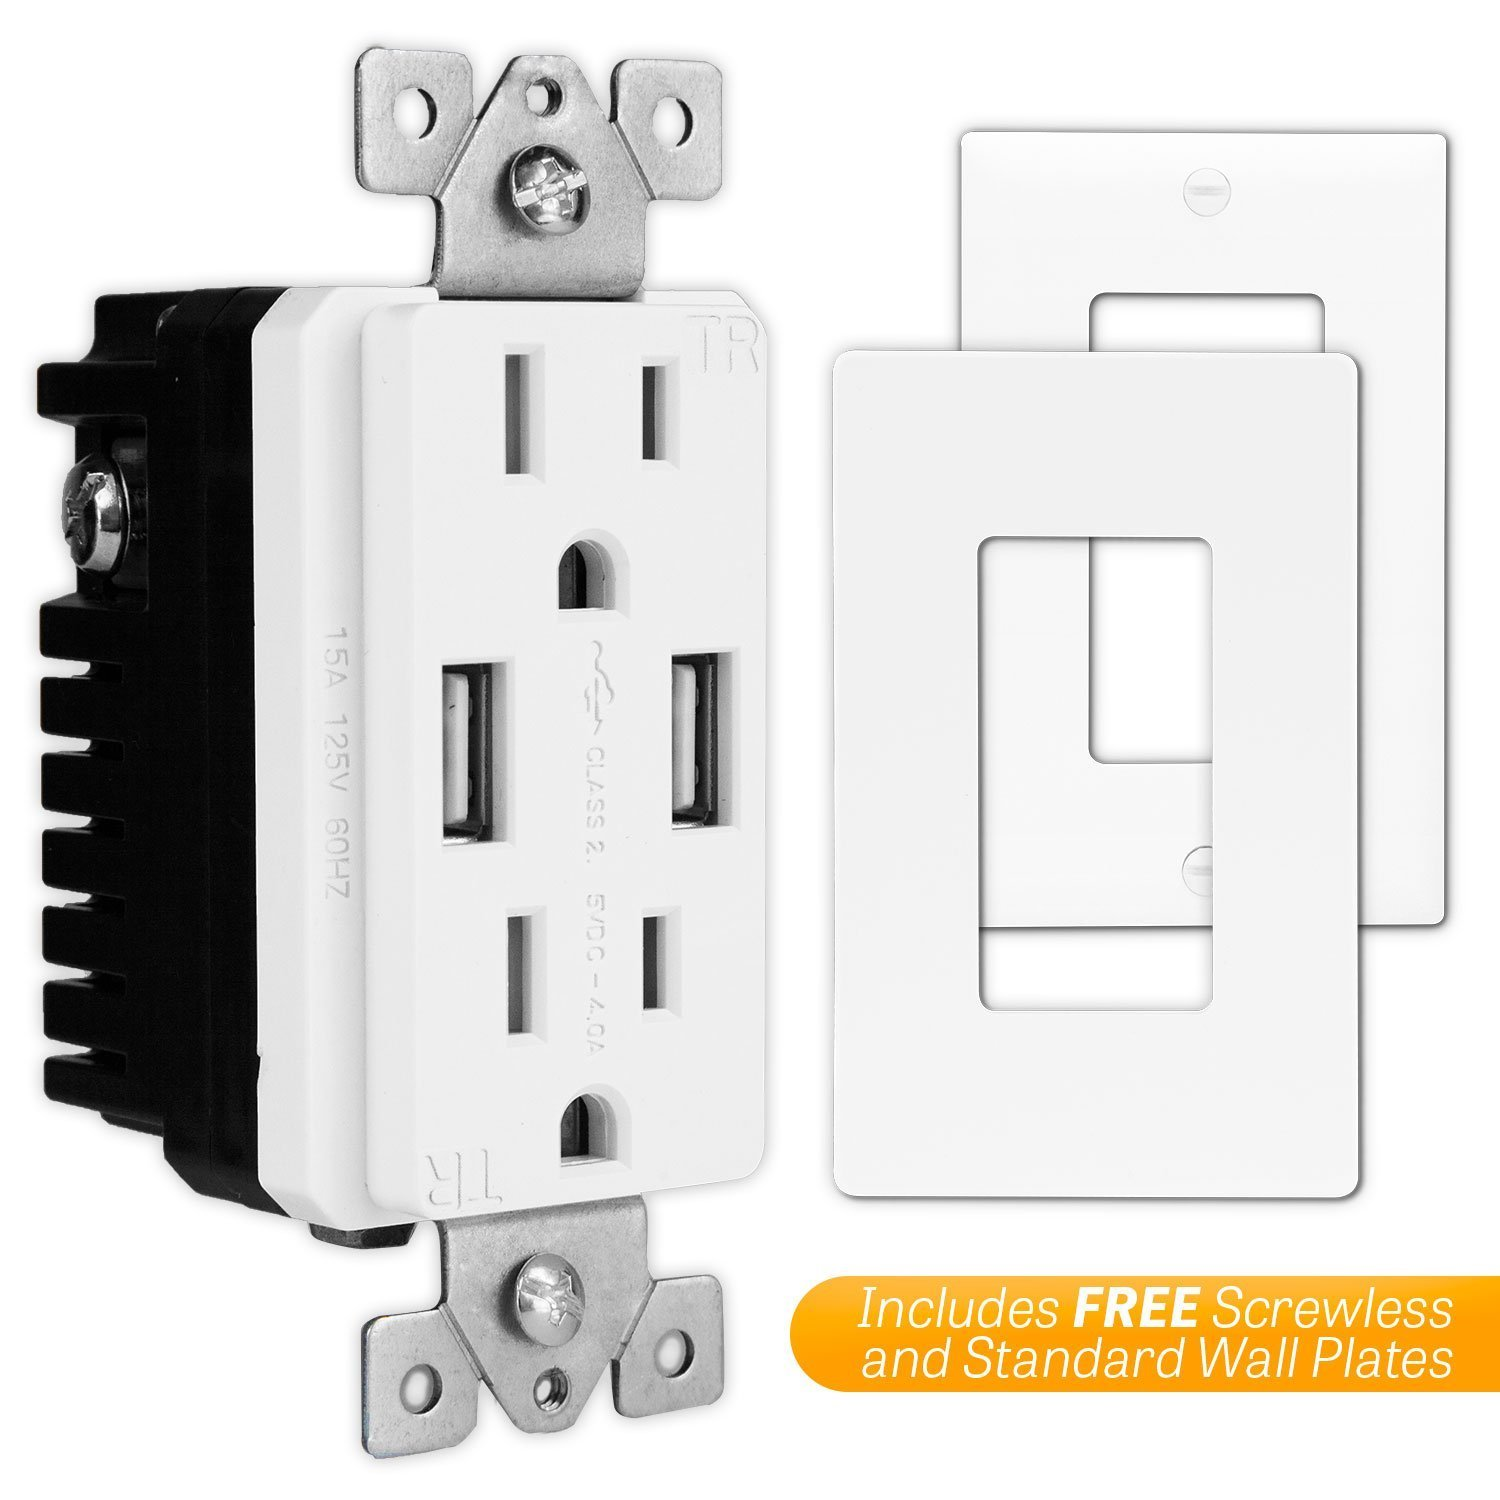 Ac Socket Wiring | New Wiring Resources 2019 on